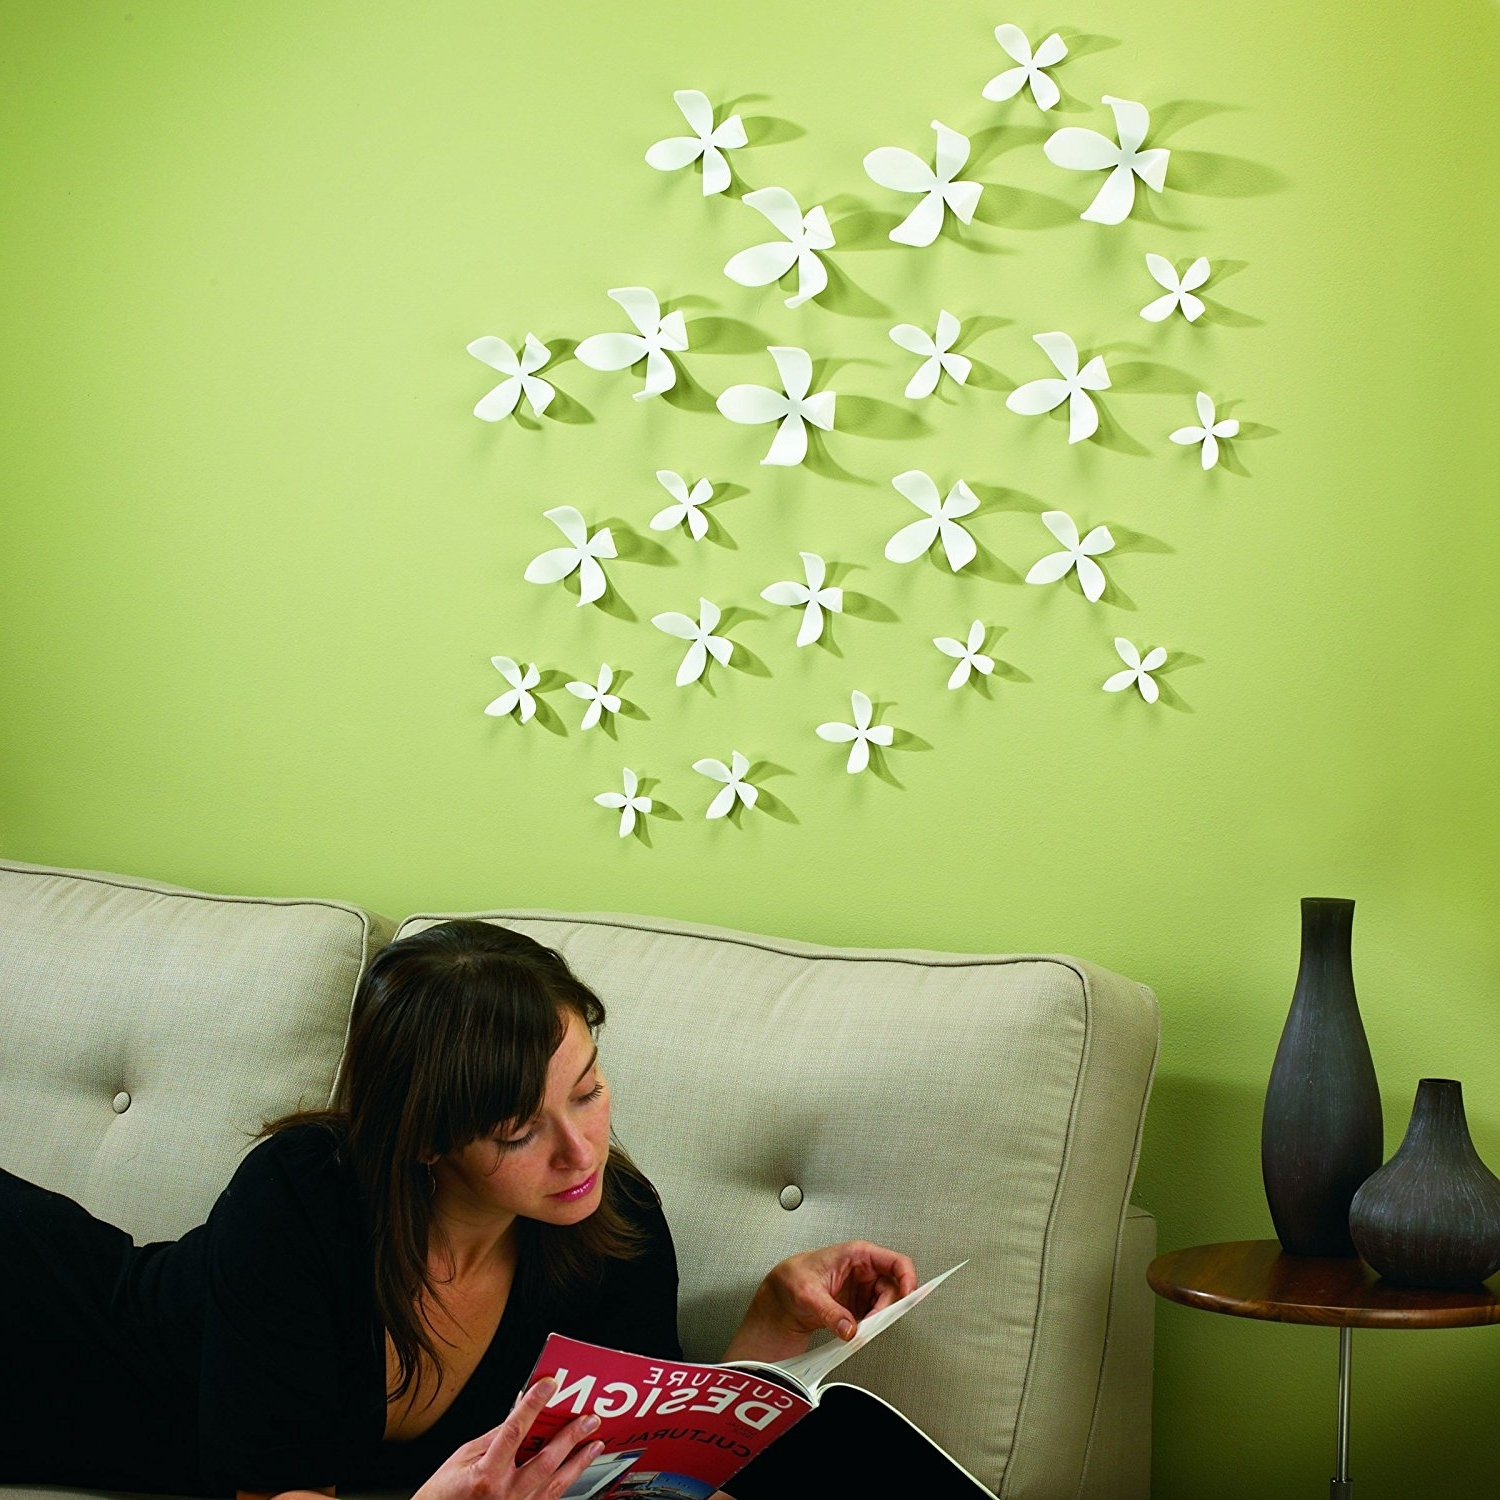 Most Recent Amazon: Umbra Wallflower Wall Decor, White, Set Of 25: Home For Umbra 3d Flower Wall Art (View 11 of 15)